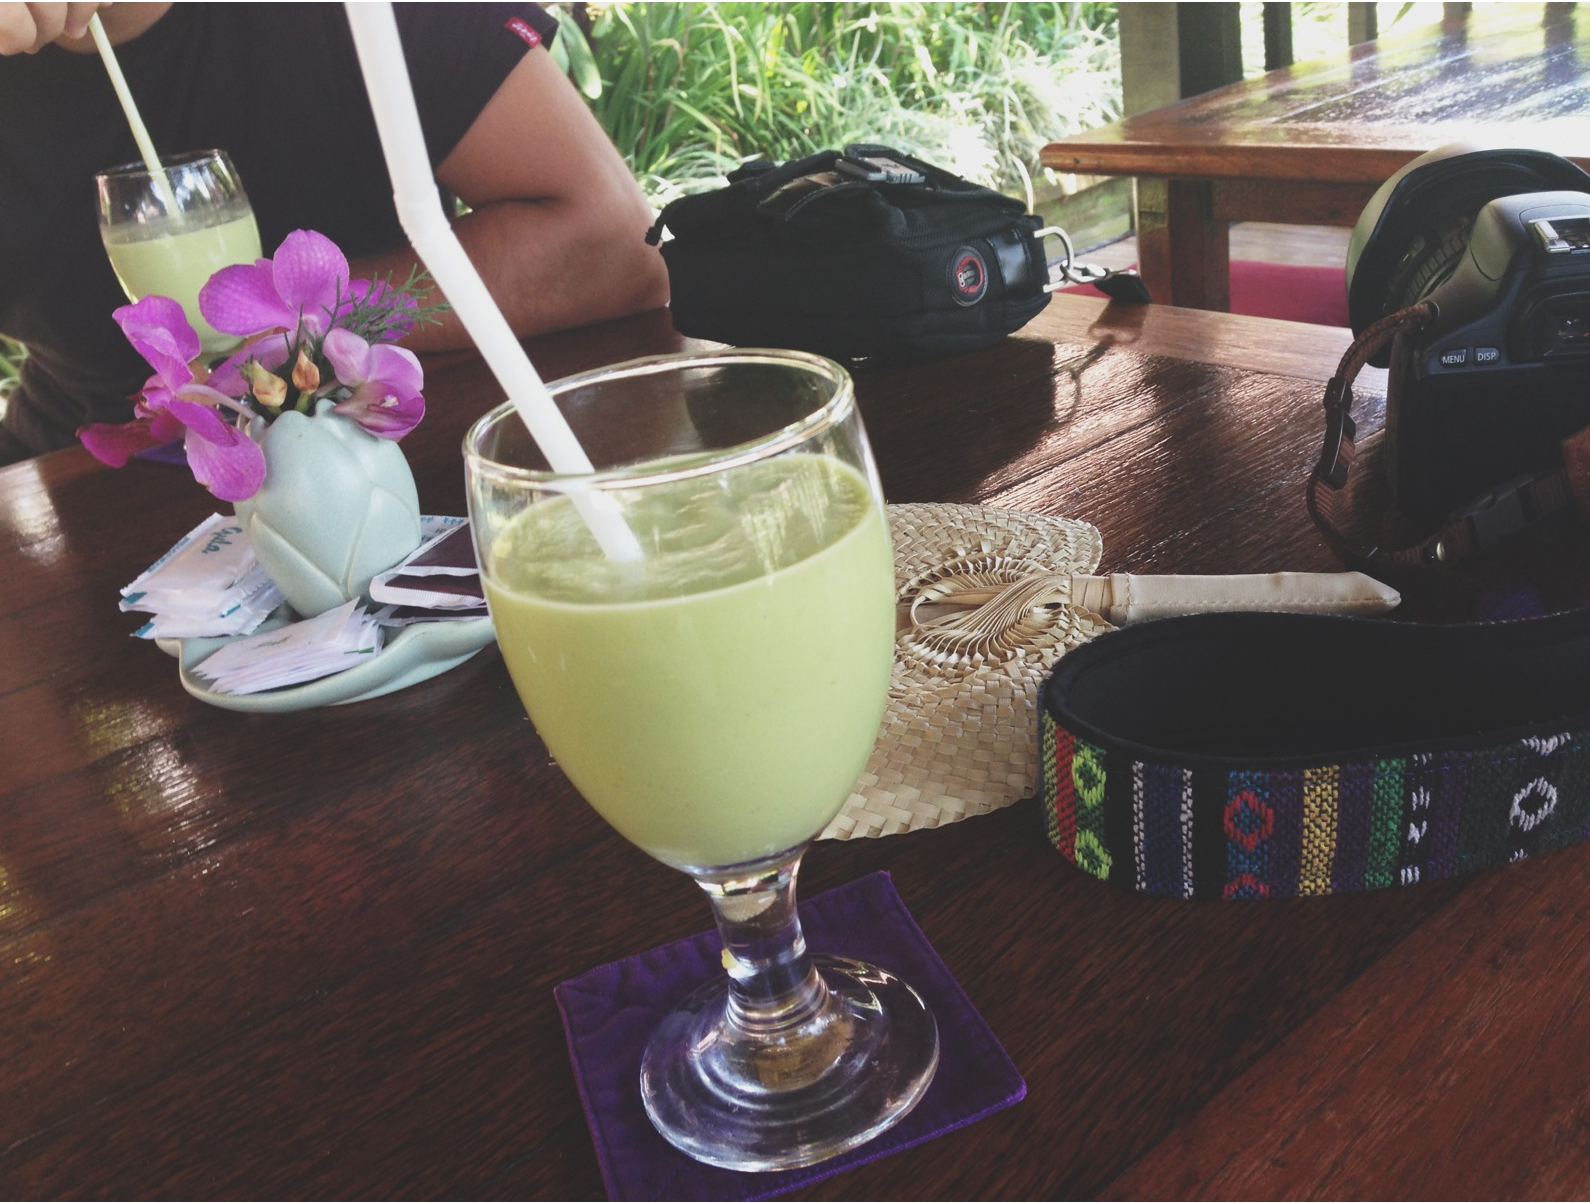 lotus-café-avocado-juice.JPG